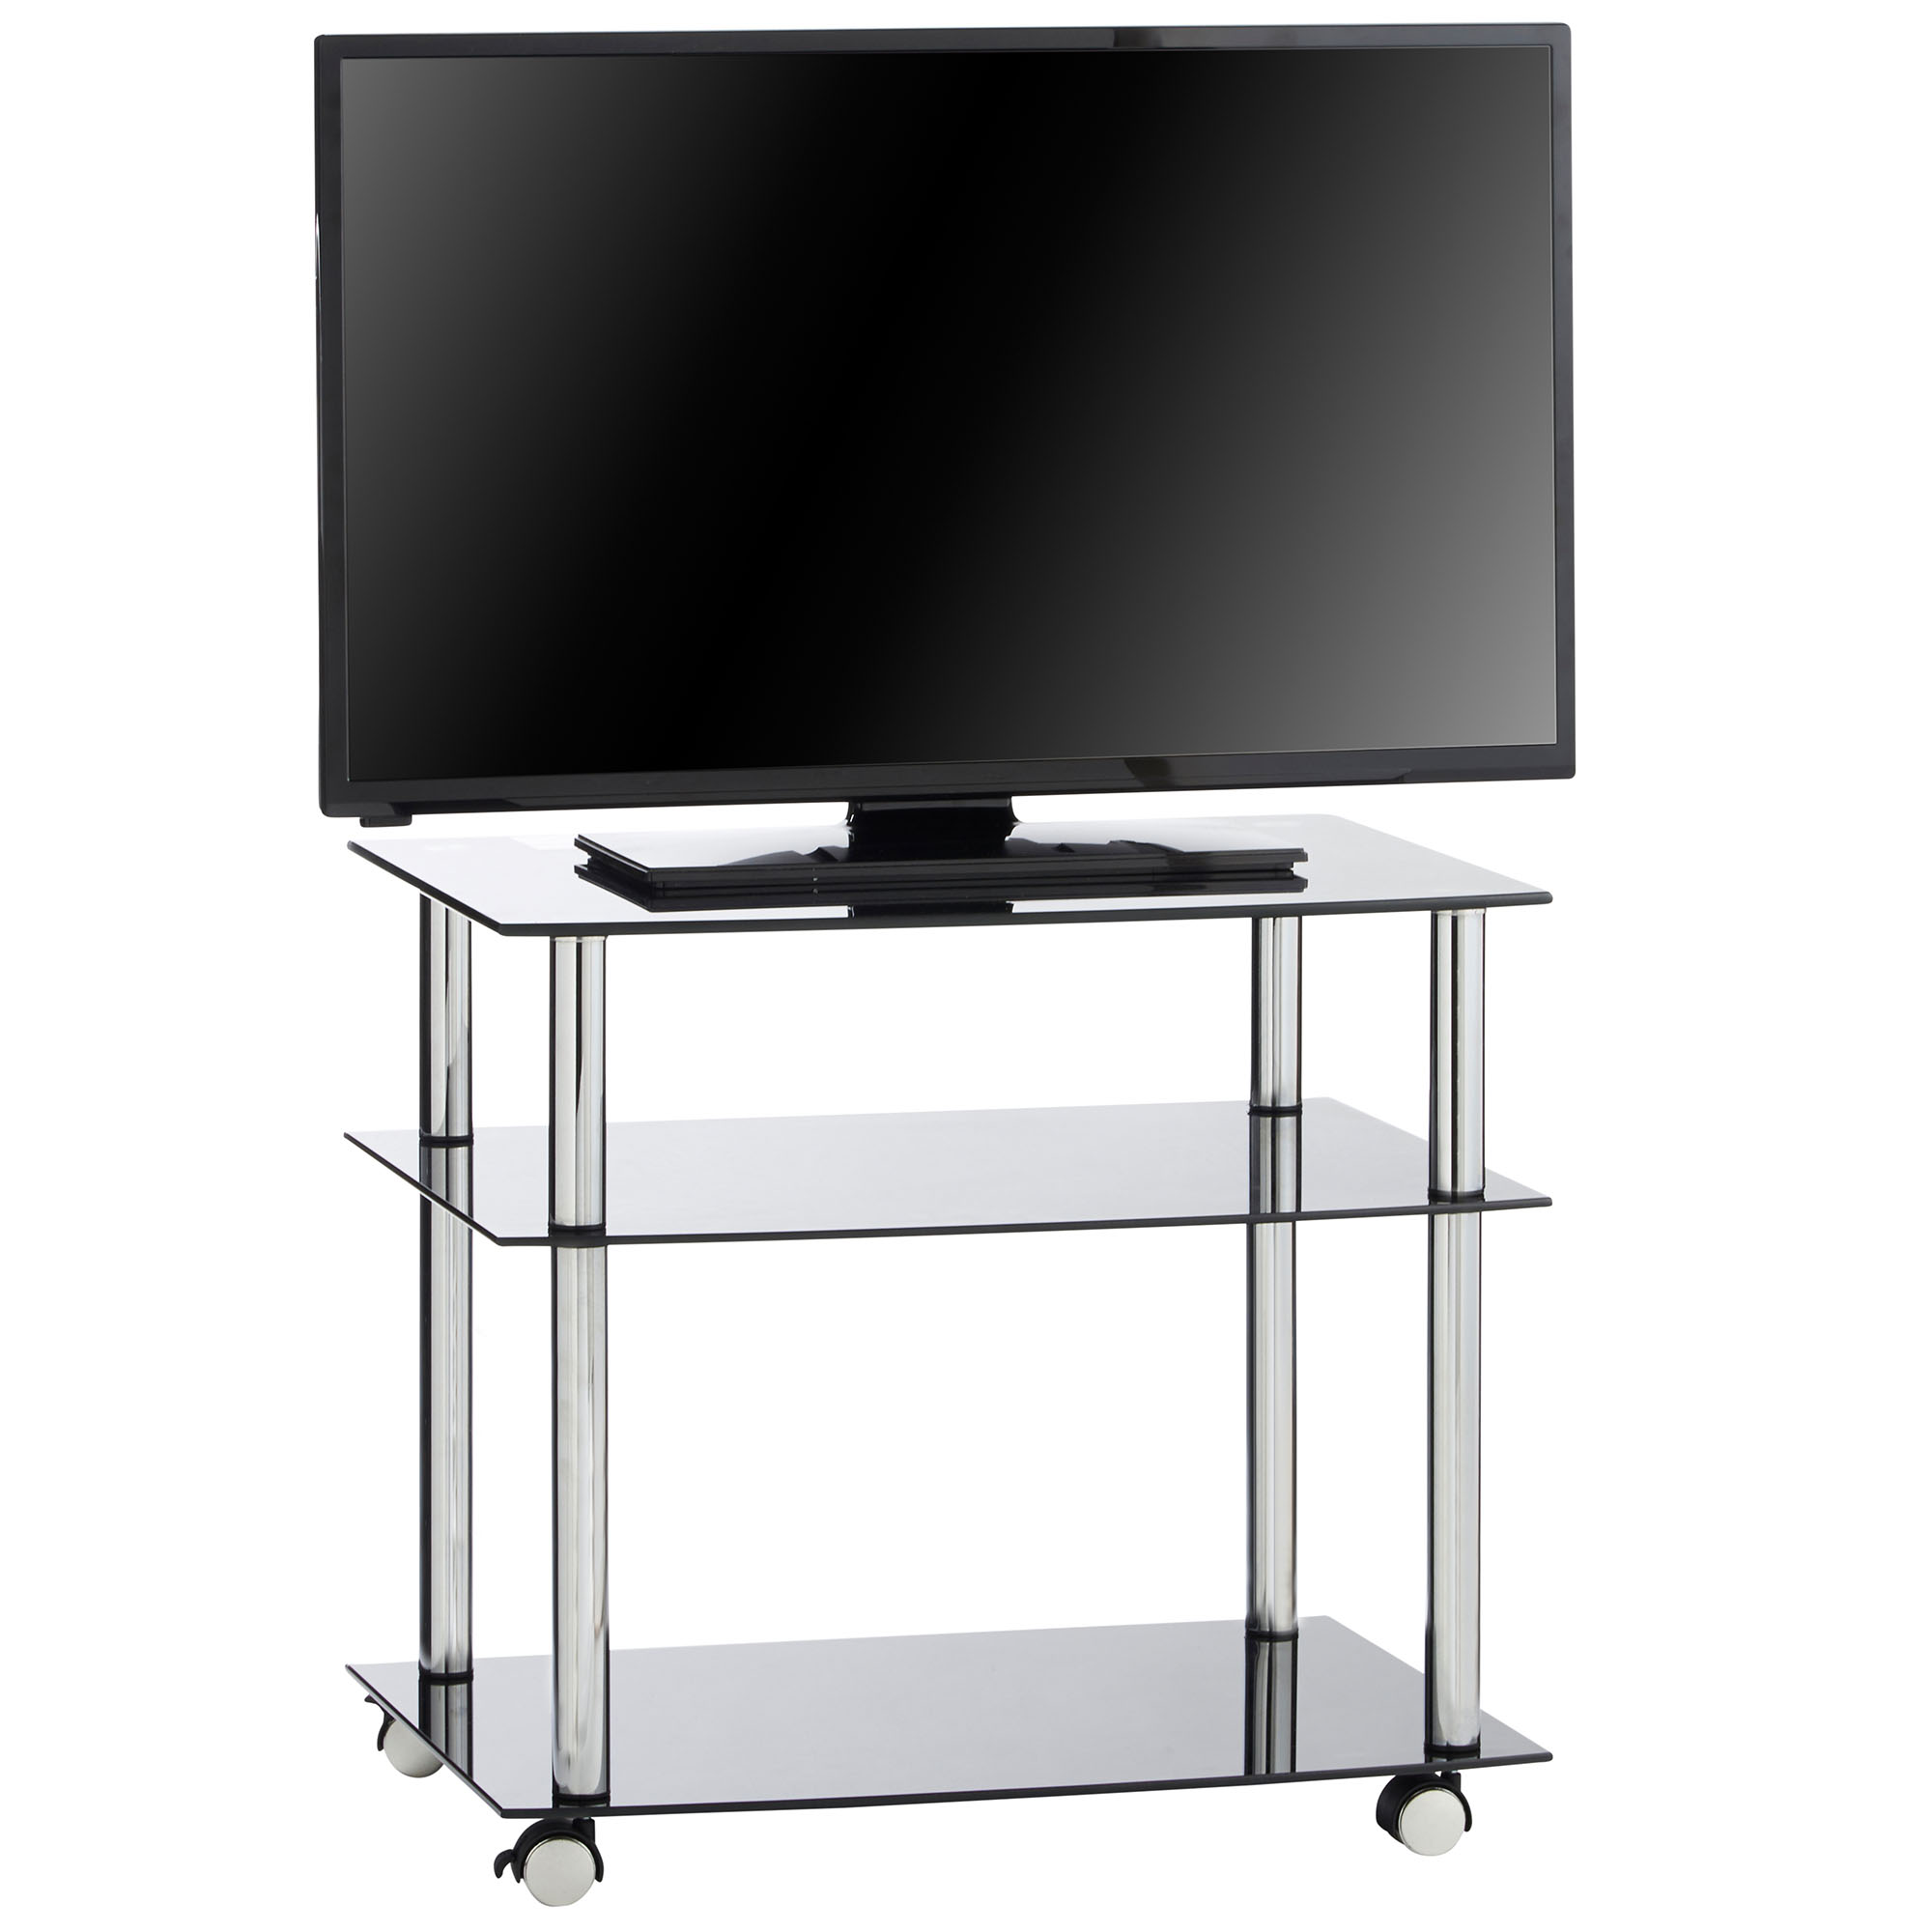 Tier Glass Tv Stand Instructions